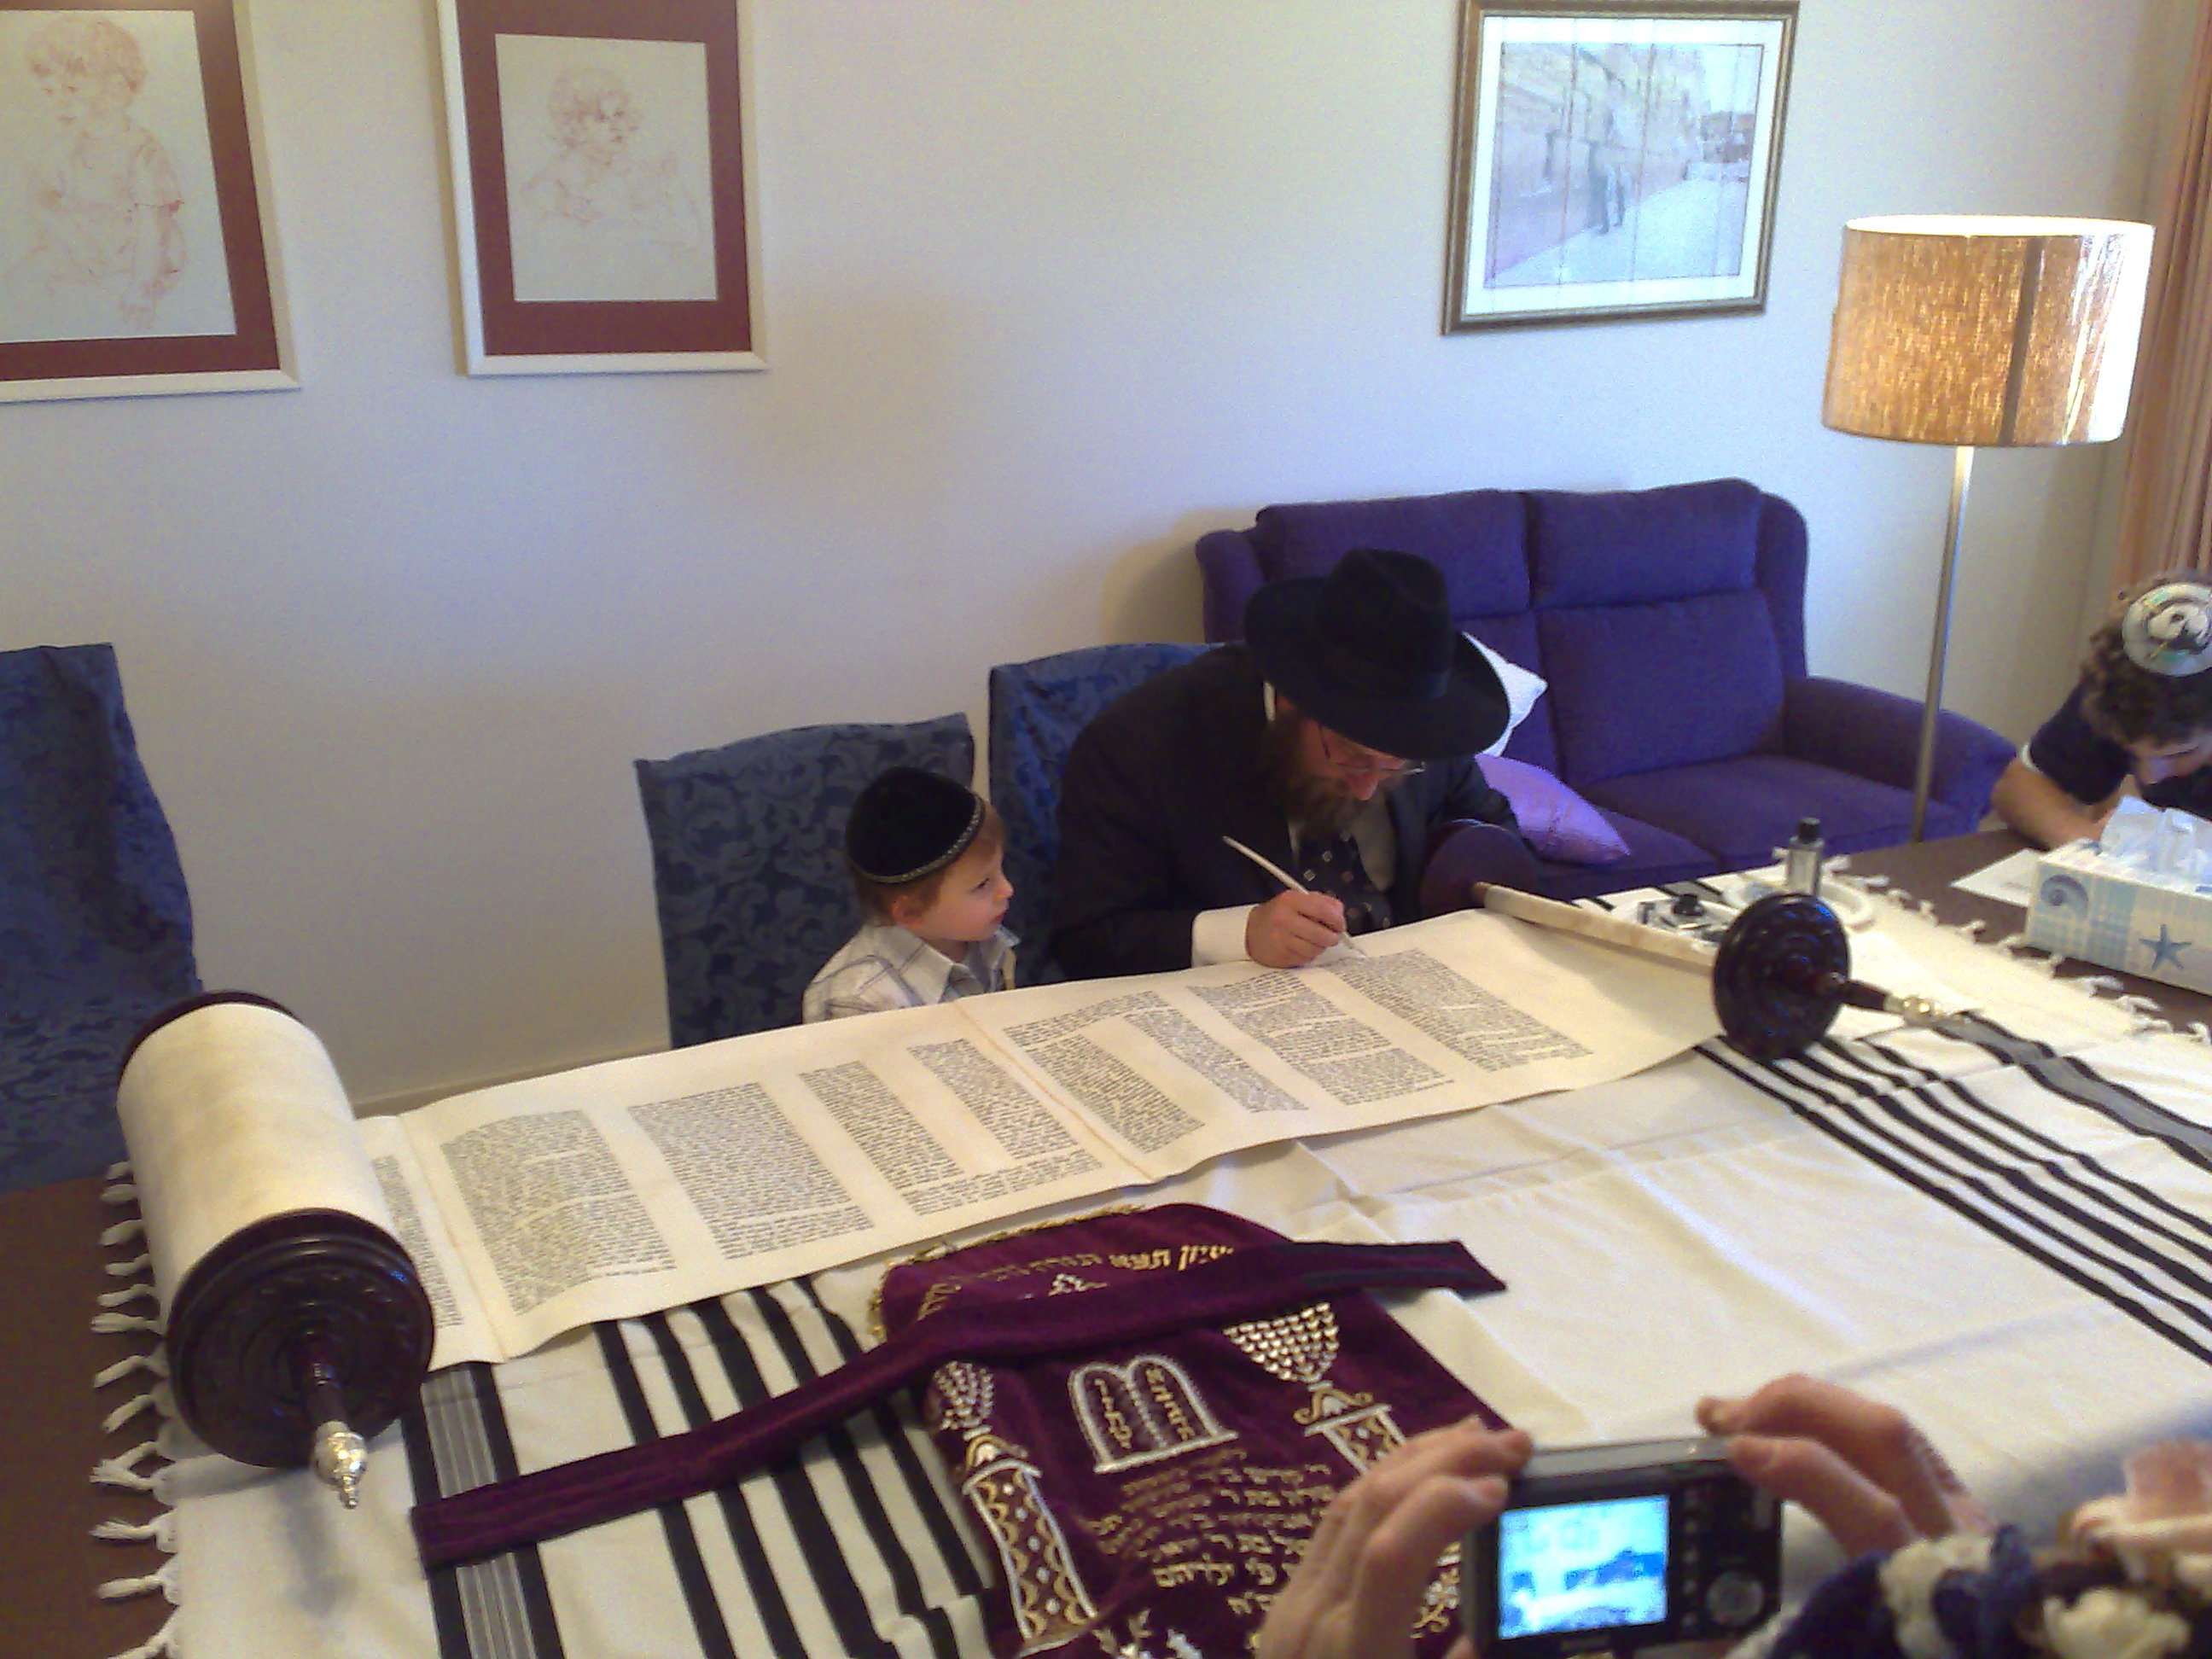 The Torah being completed